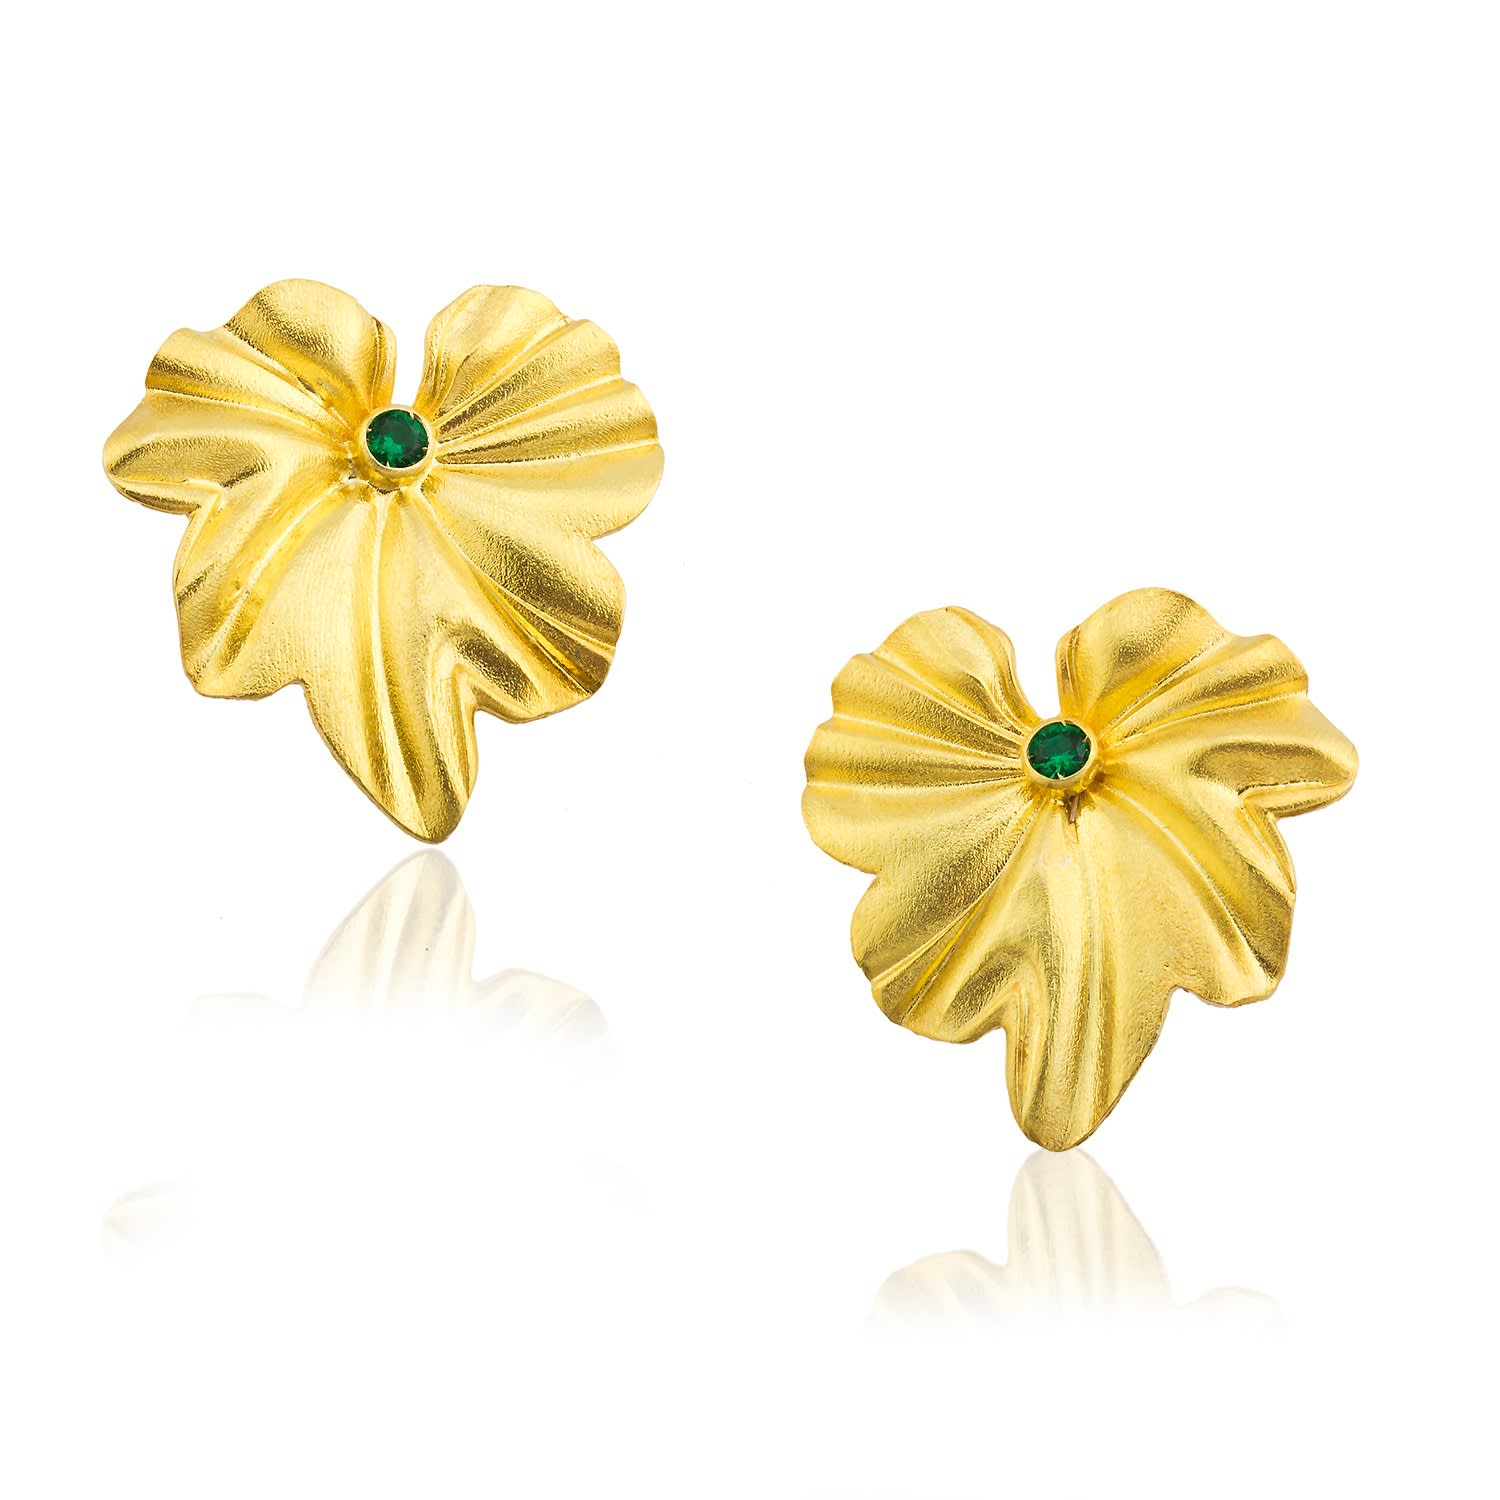 22K Yellow Gold plated LEAF long earrings